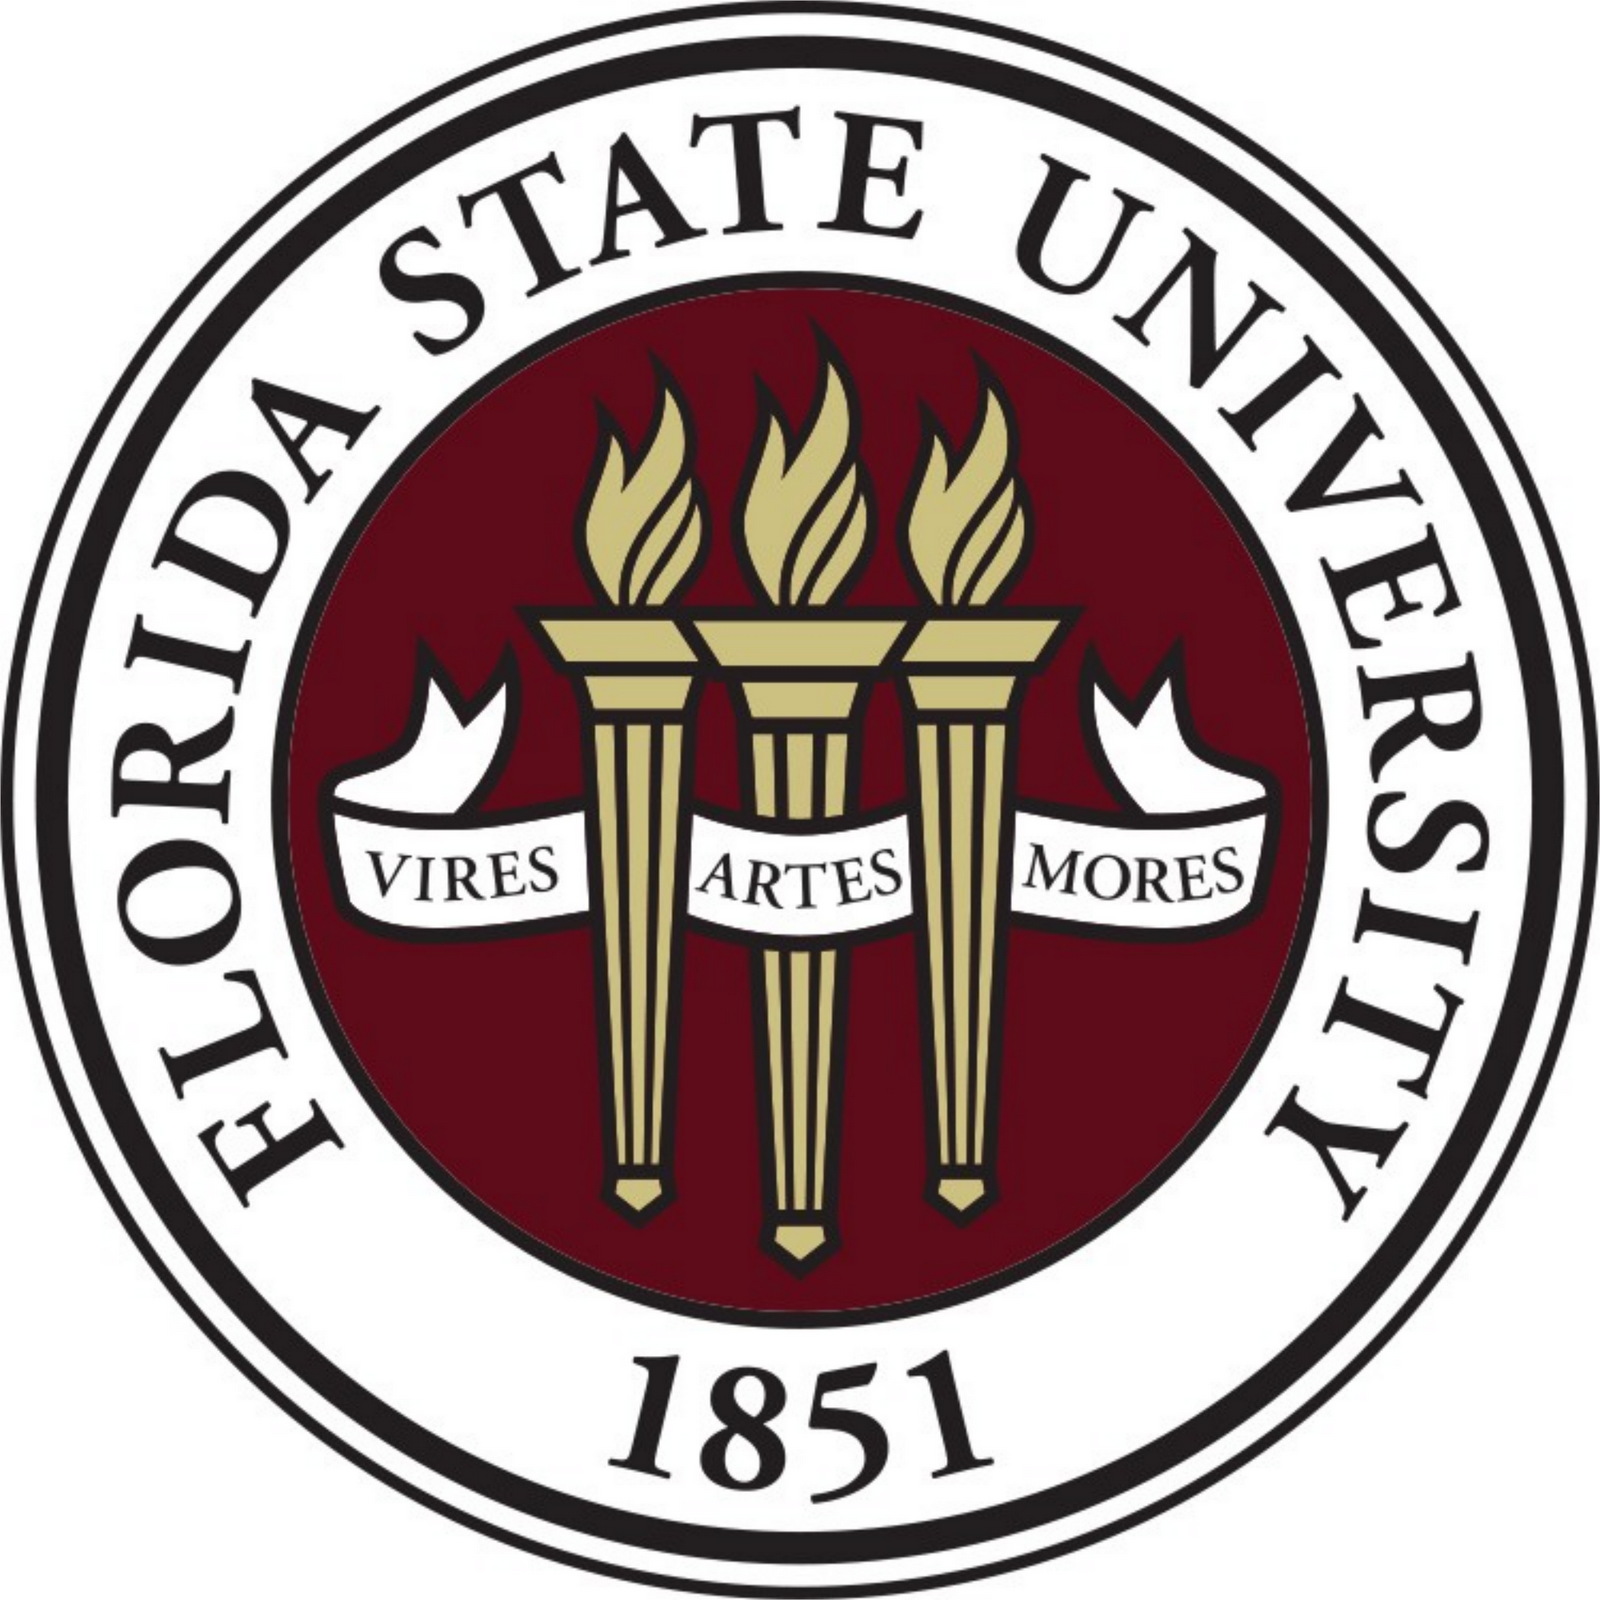 Florida State Seminoles Wallpapers & Browser Themes